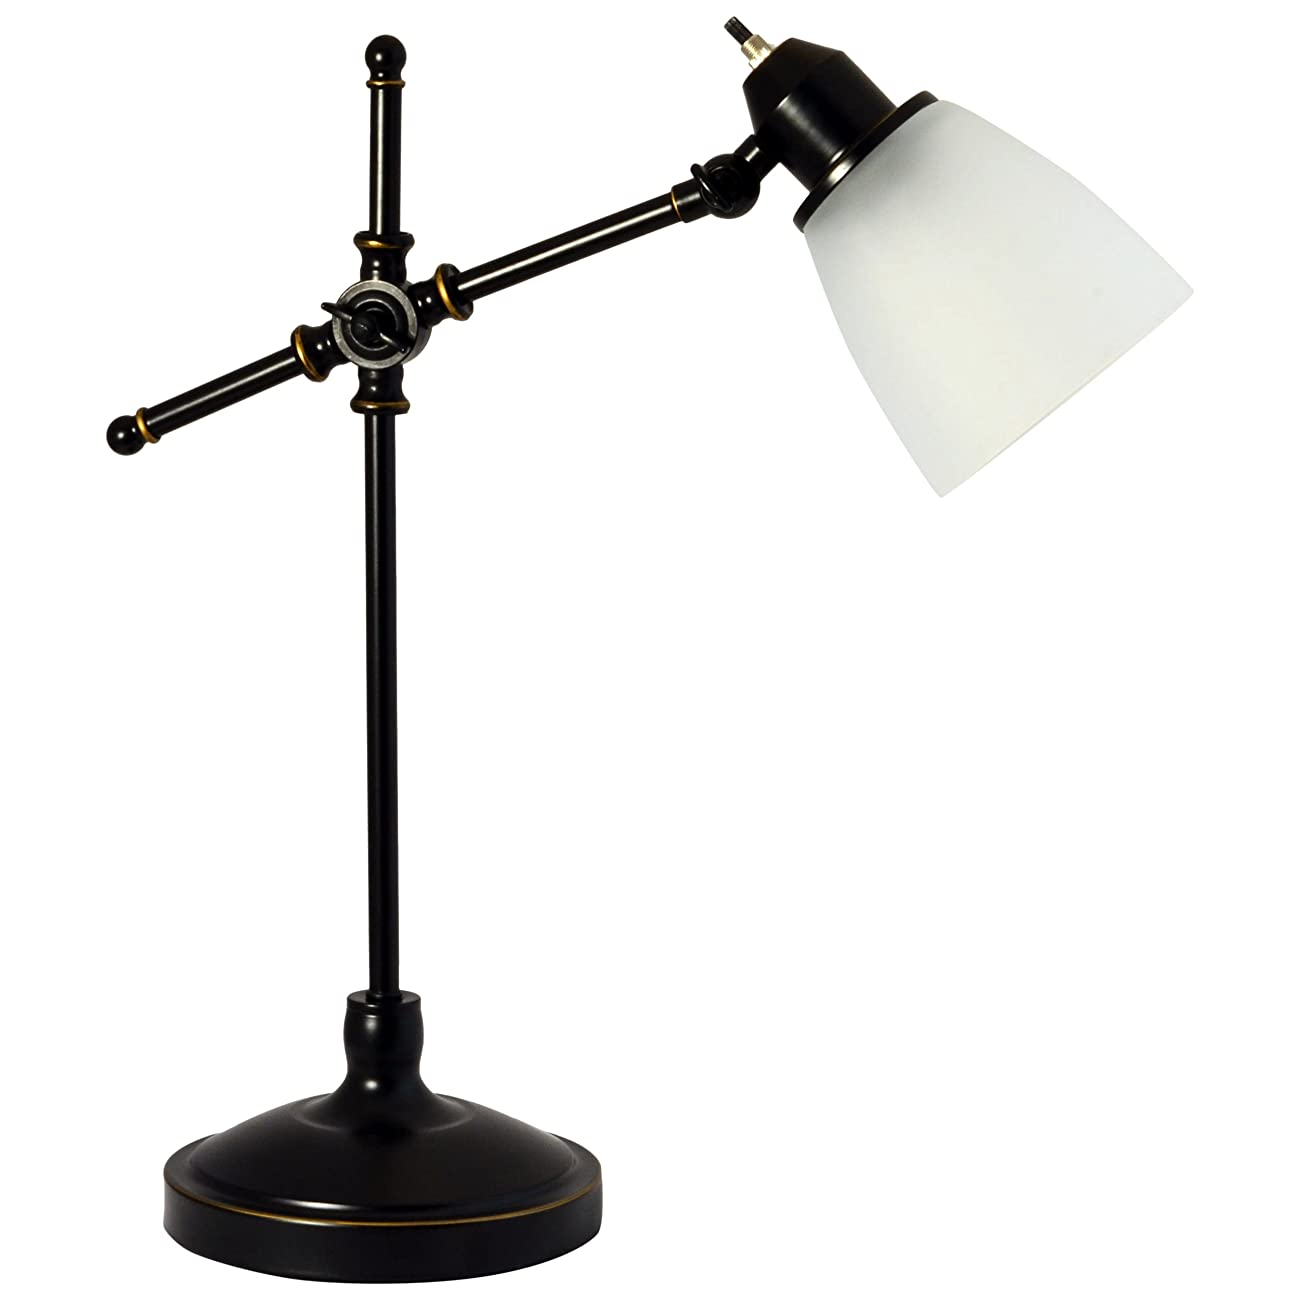 Light Accents Antique Style Desk Lamp with Black with Gold Trim and Frosted White Glass Shade Desk Light 4